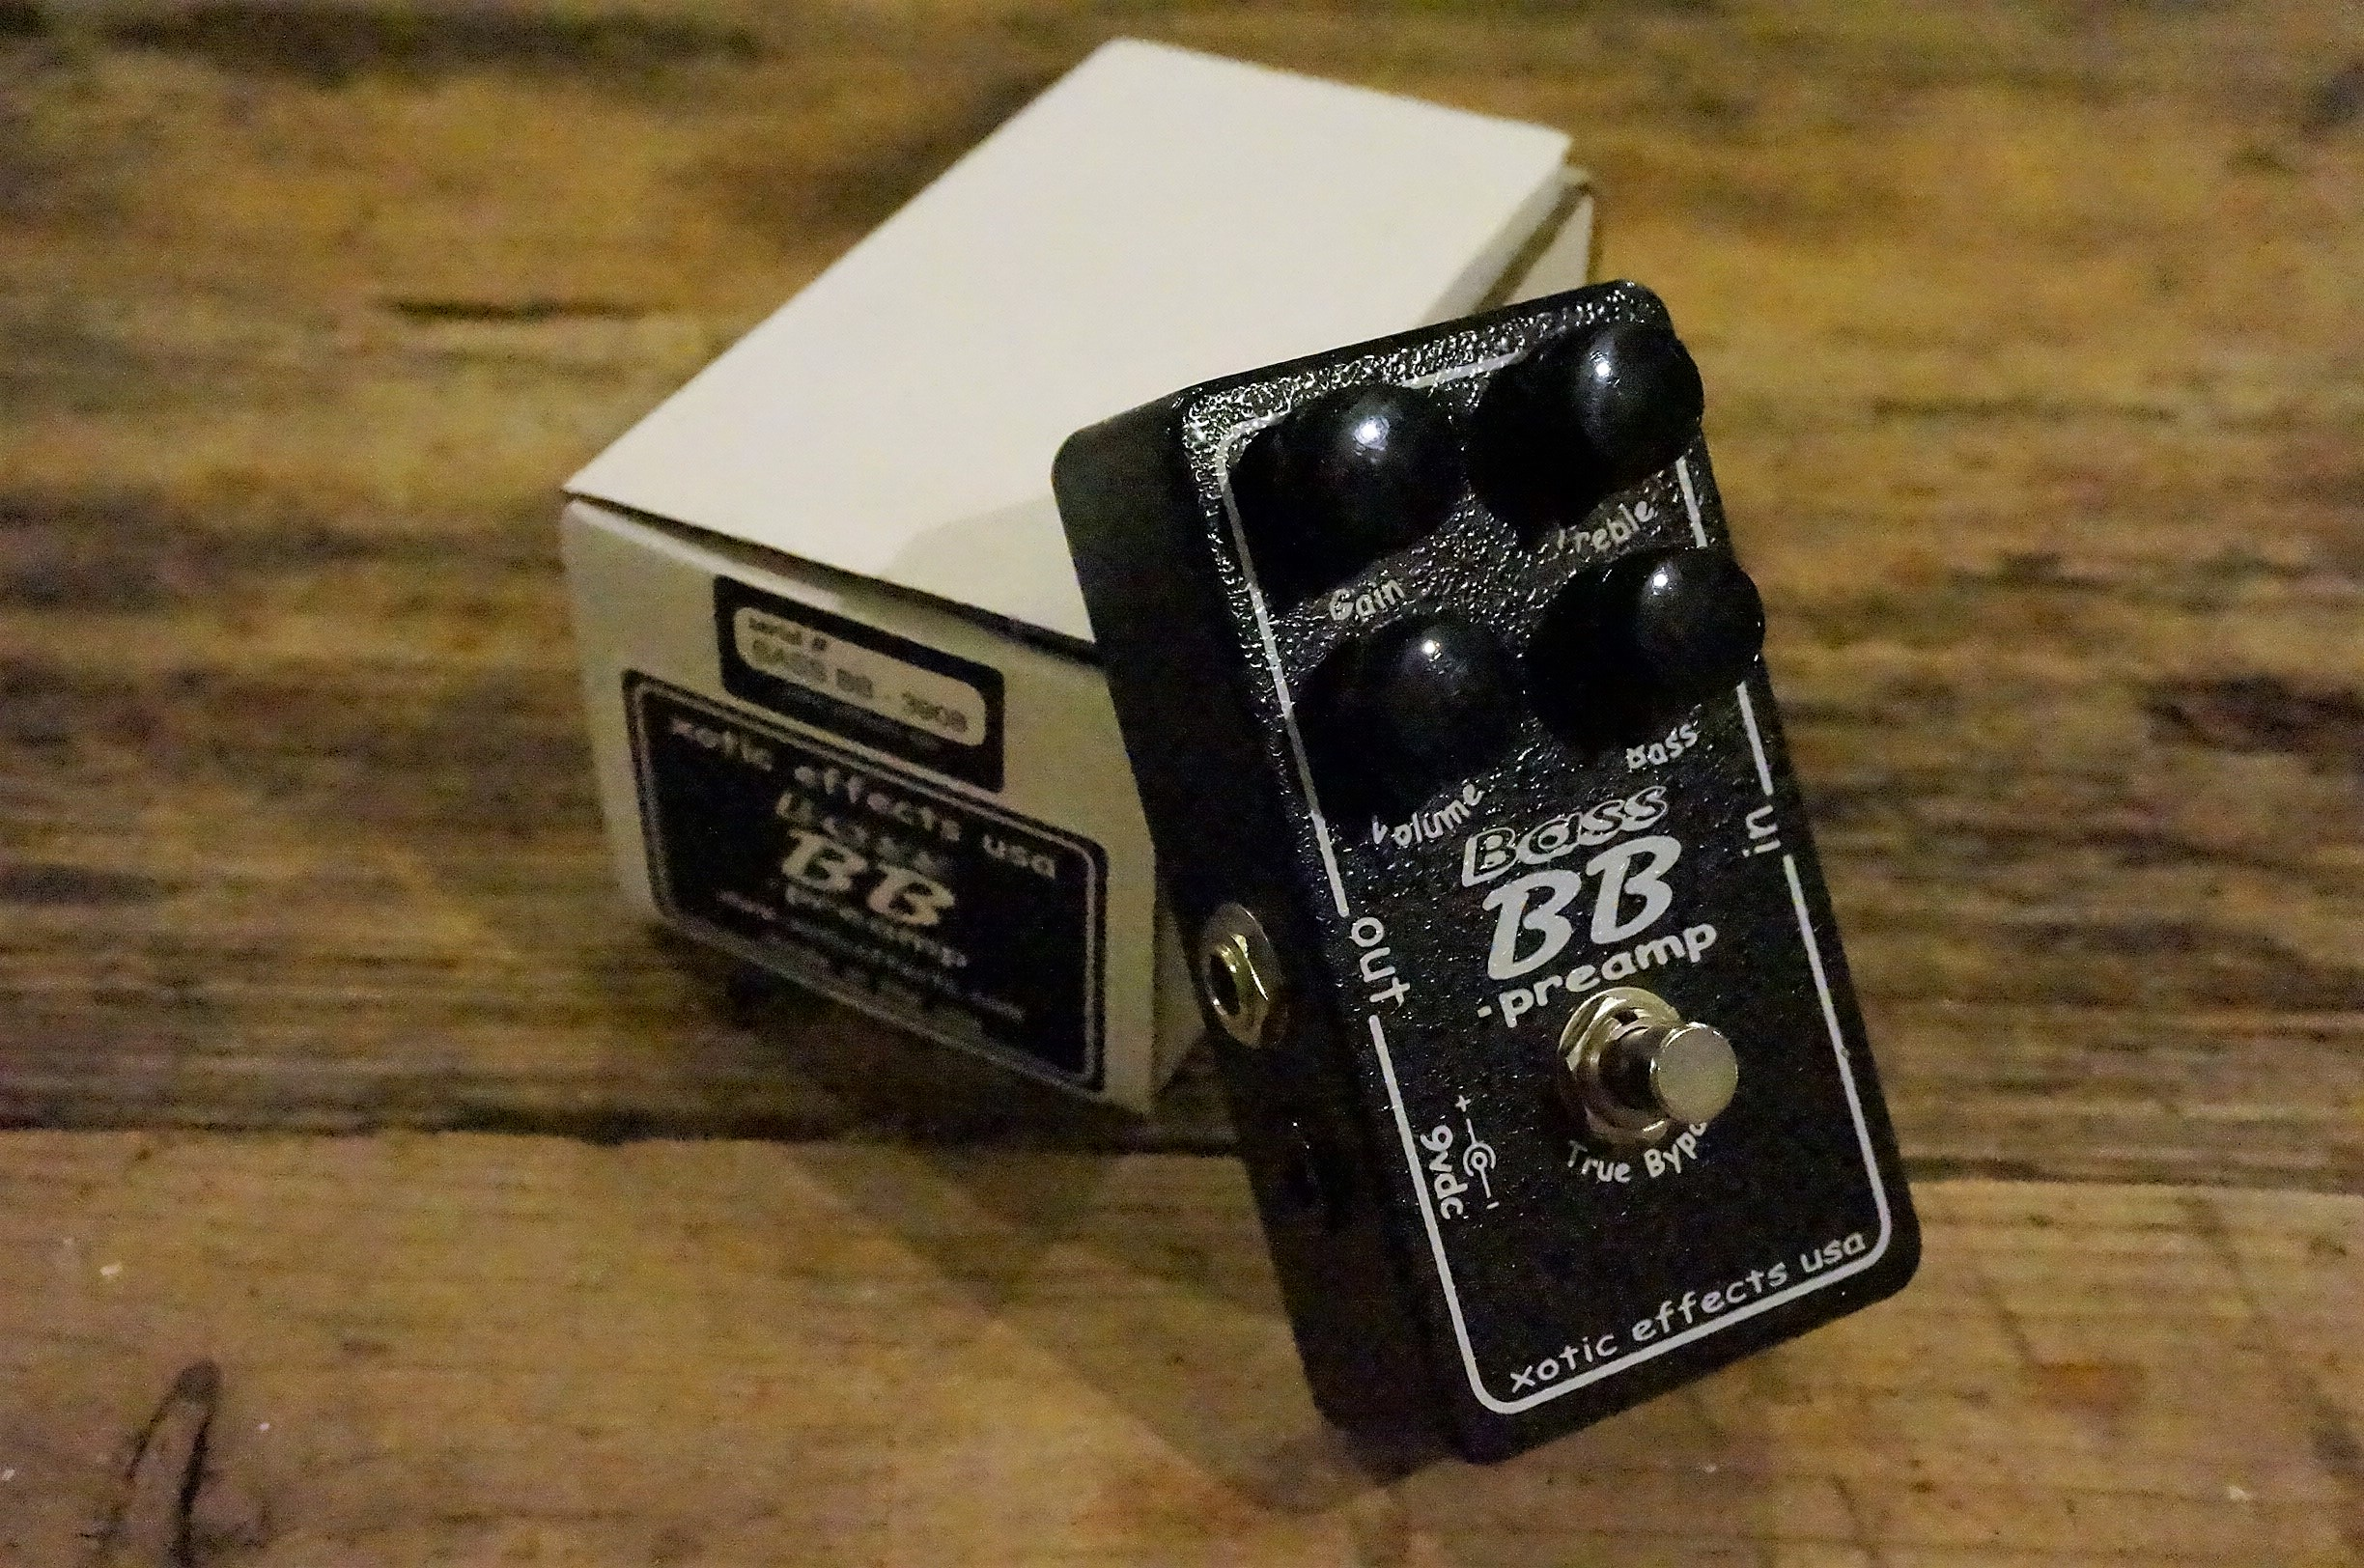 Xotic – BASS BB preamp